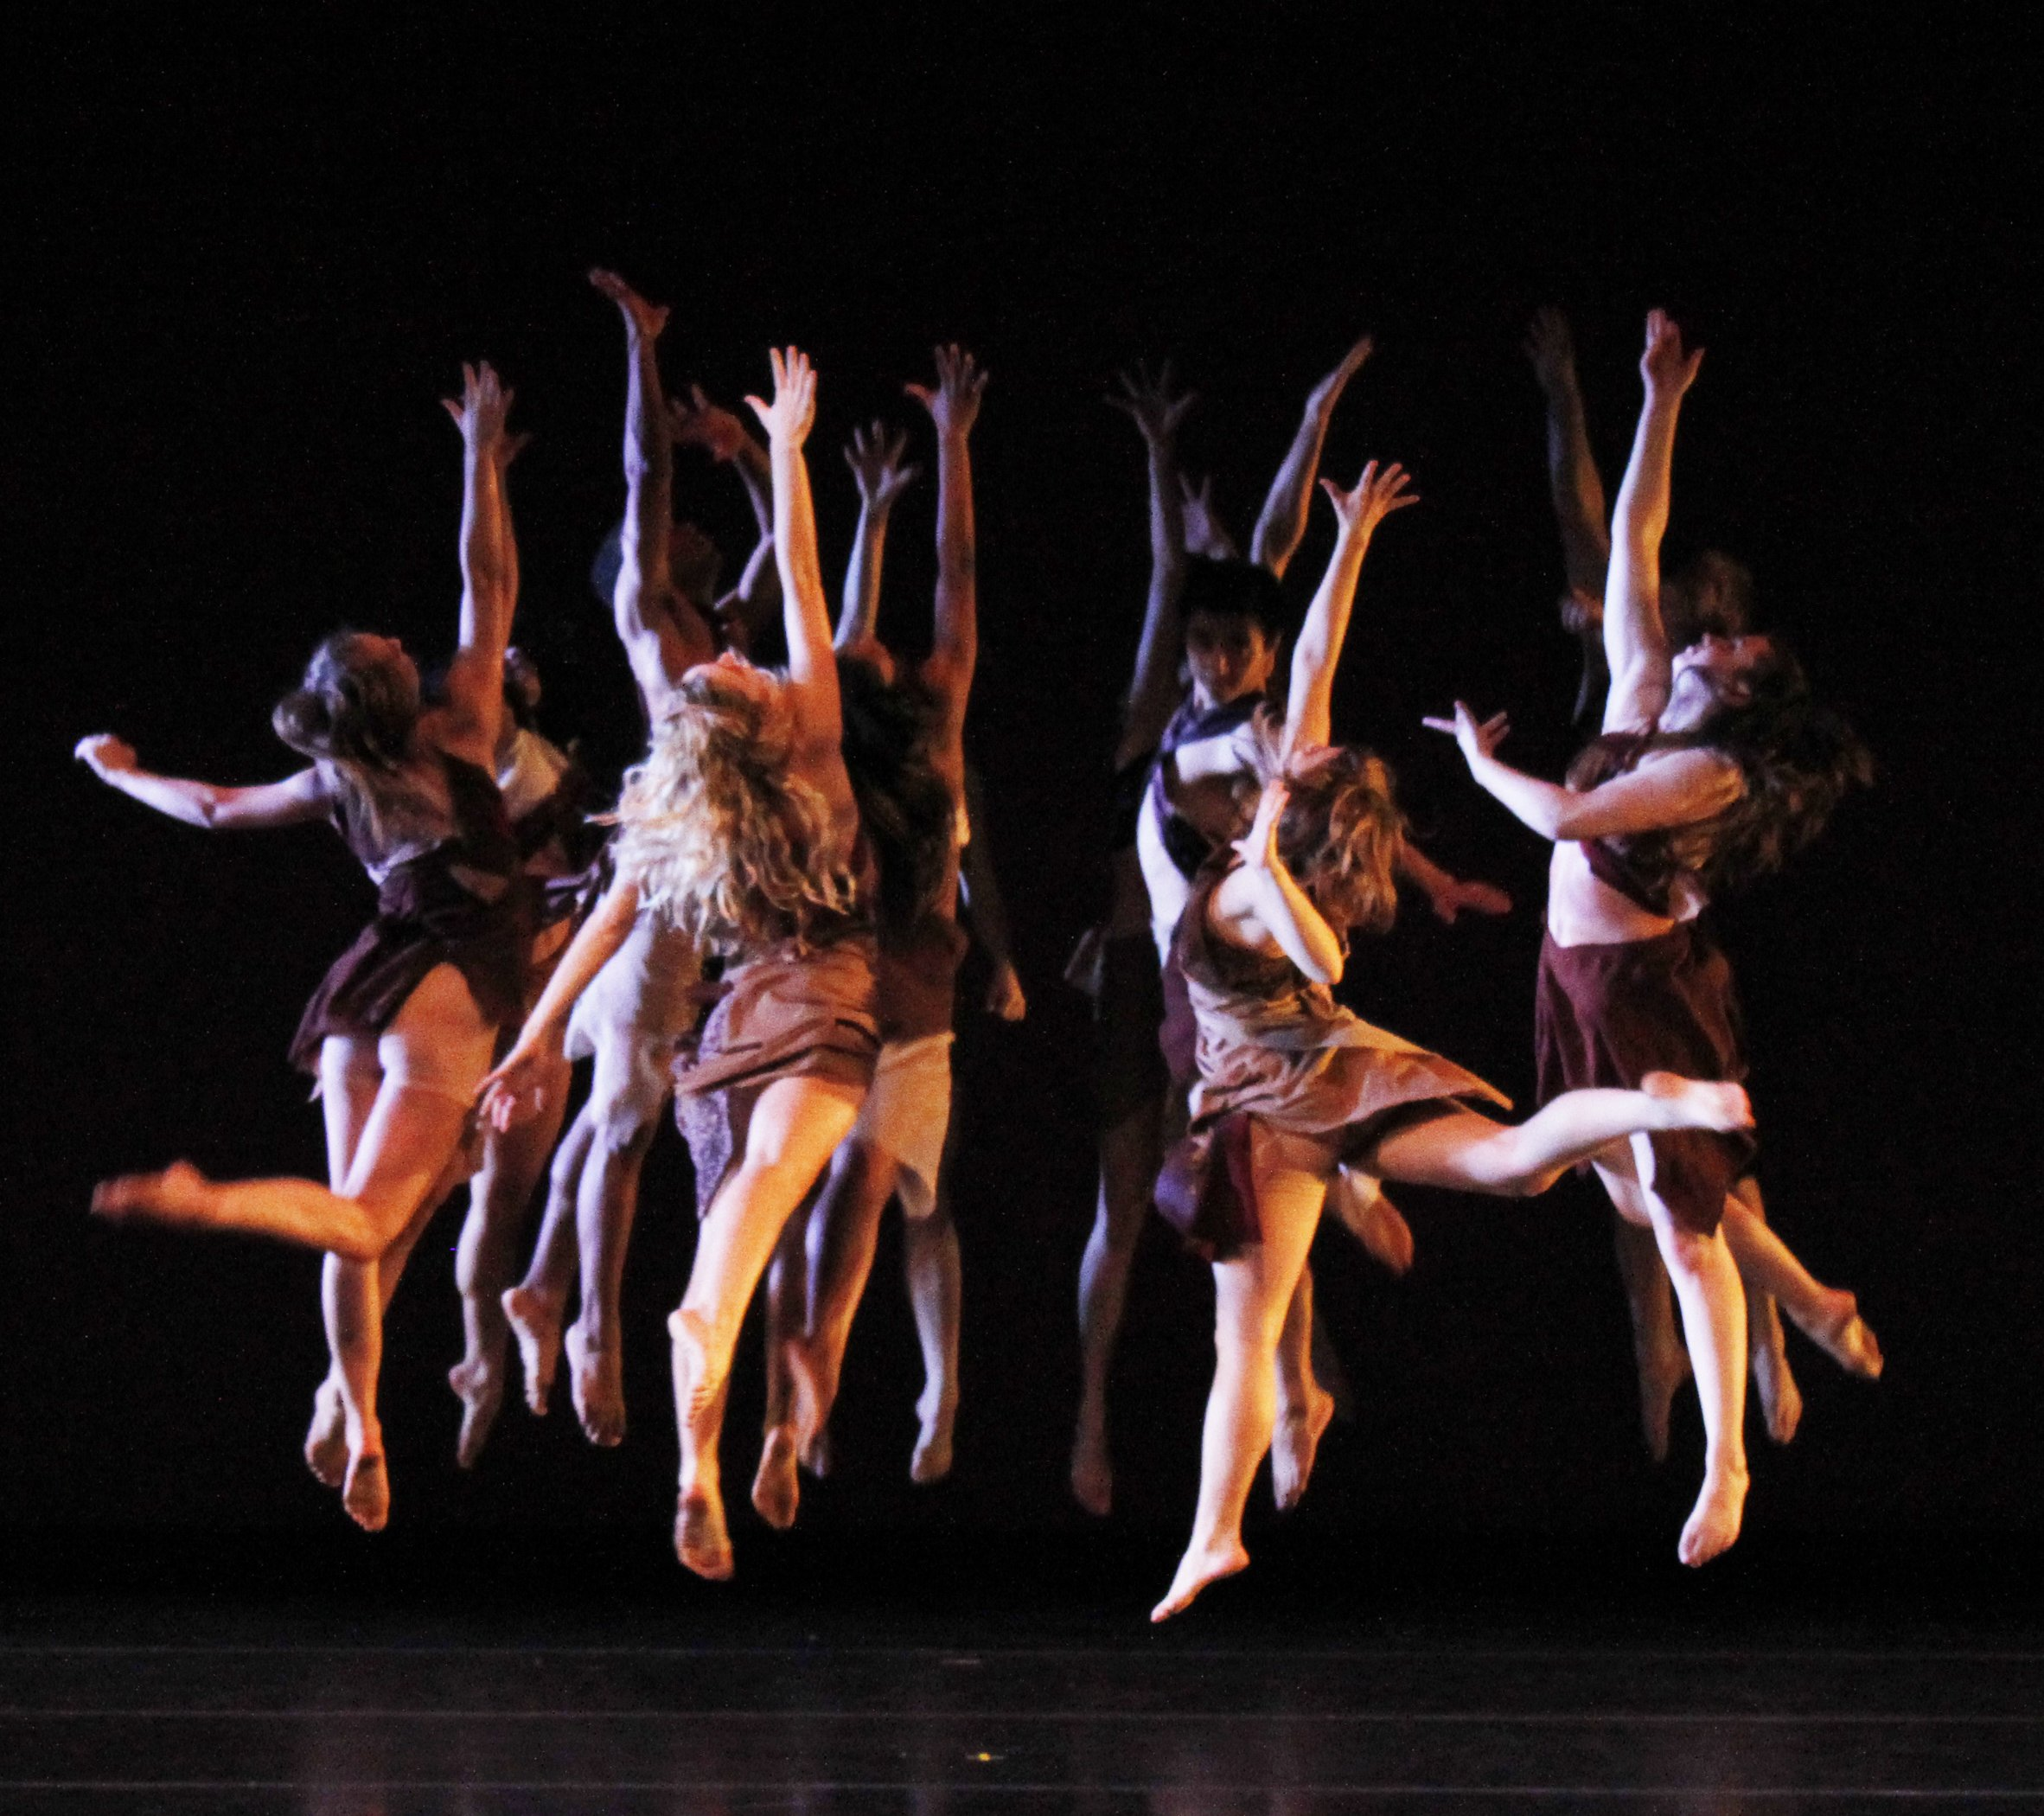 ballet and modern dance Doors 7:00 pm • showtime 7:30 pm $8 advance • $10 door buy tickets: http:/ /wwwbrownpaperticketscom/event/2538198.